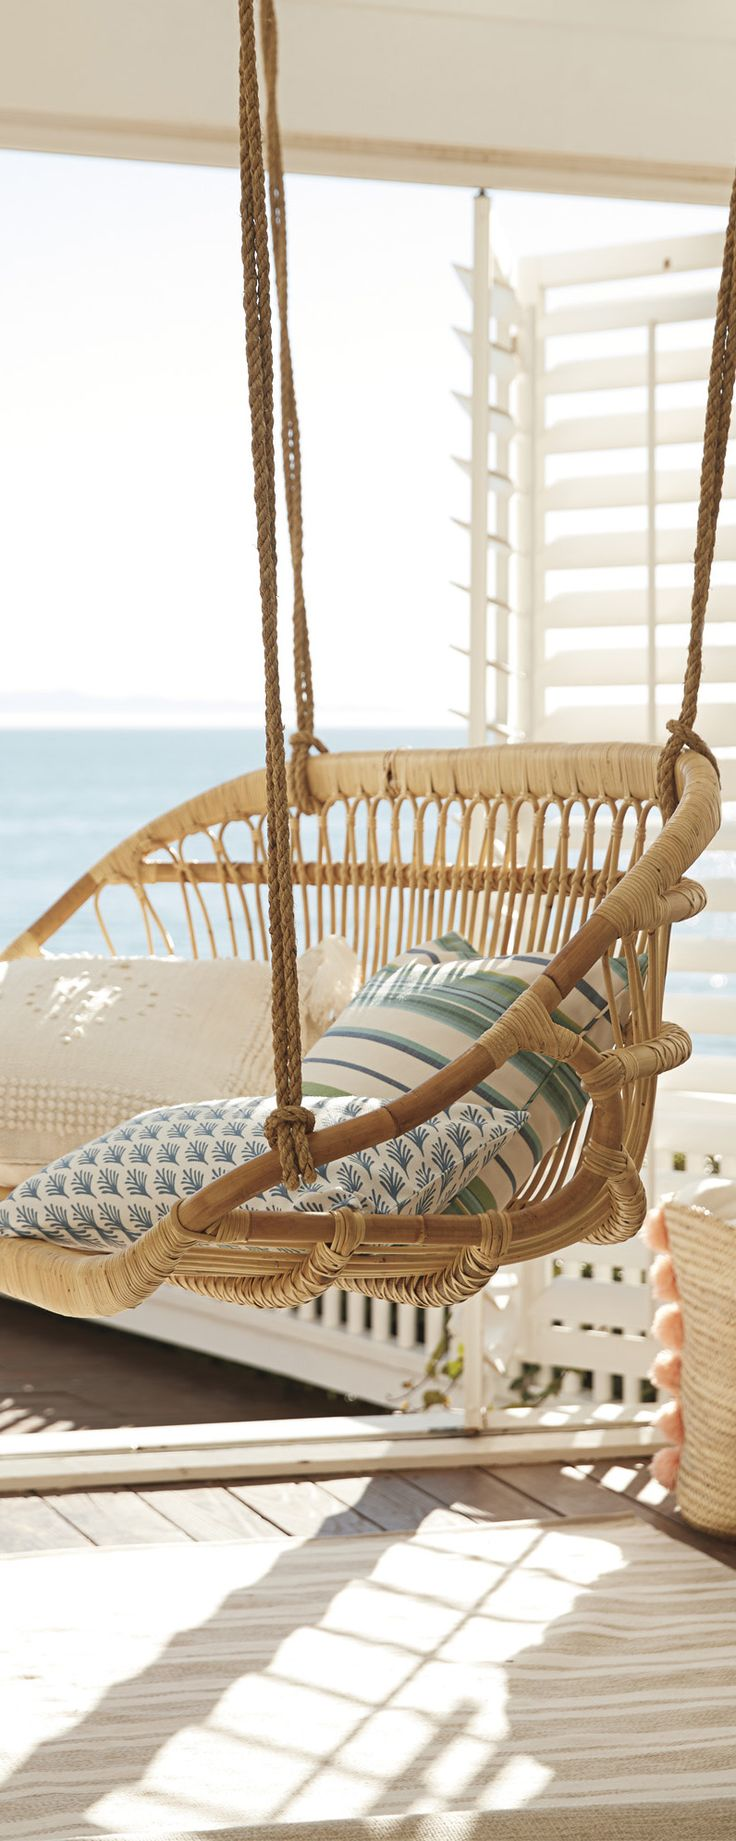 Swinging Bench | Coastal Style Decorating